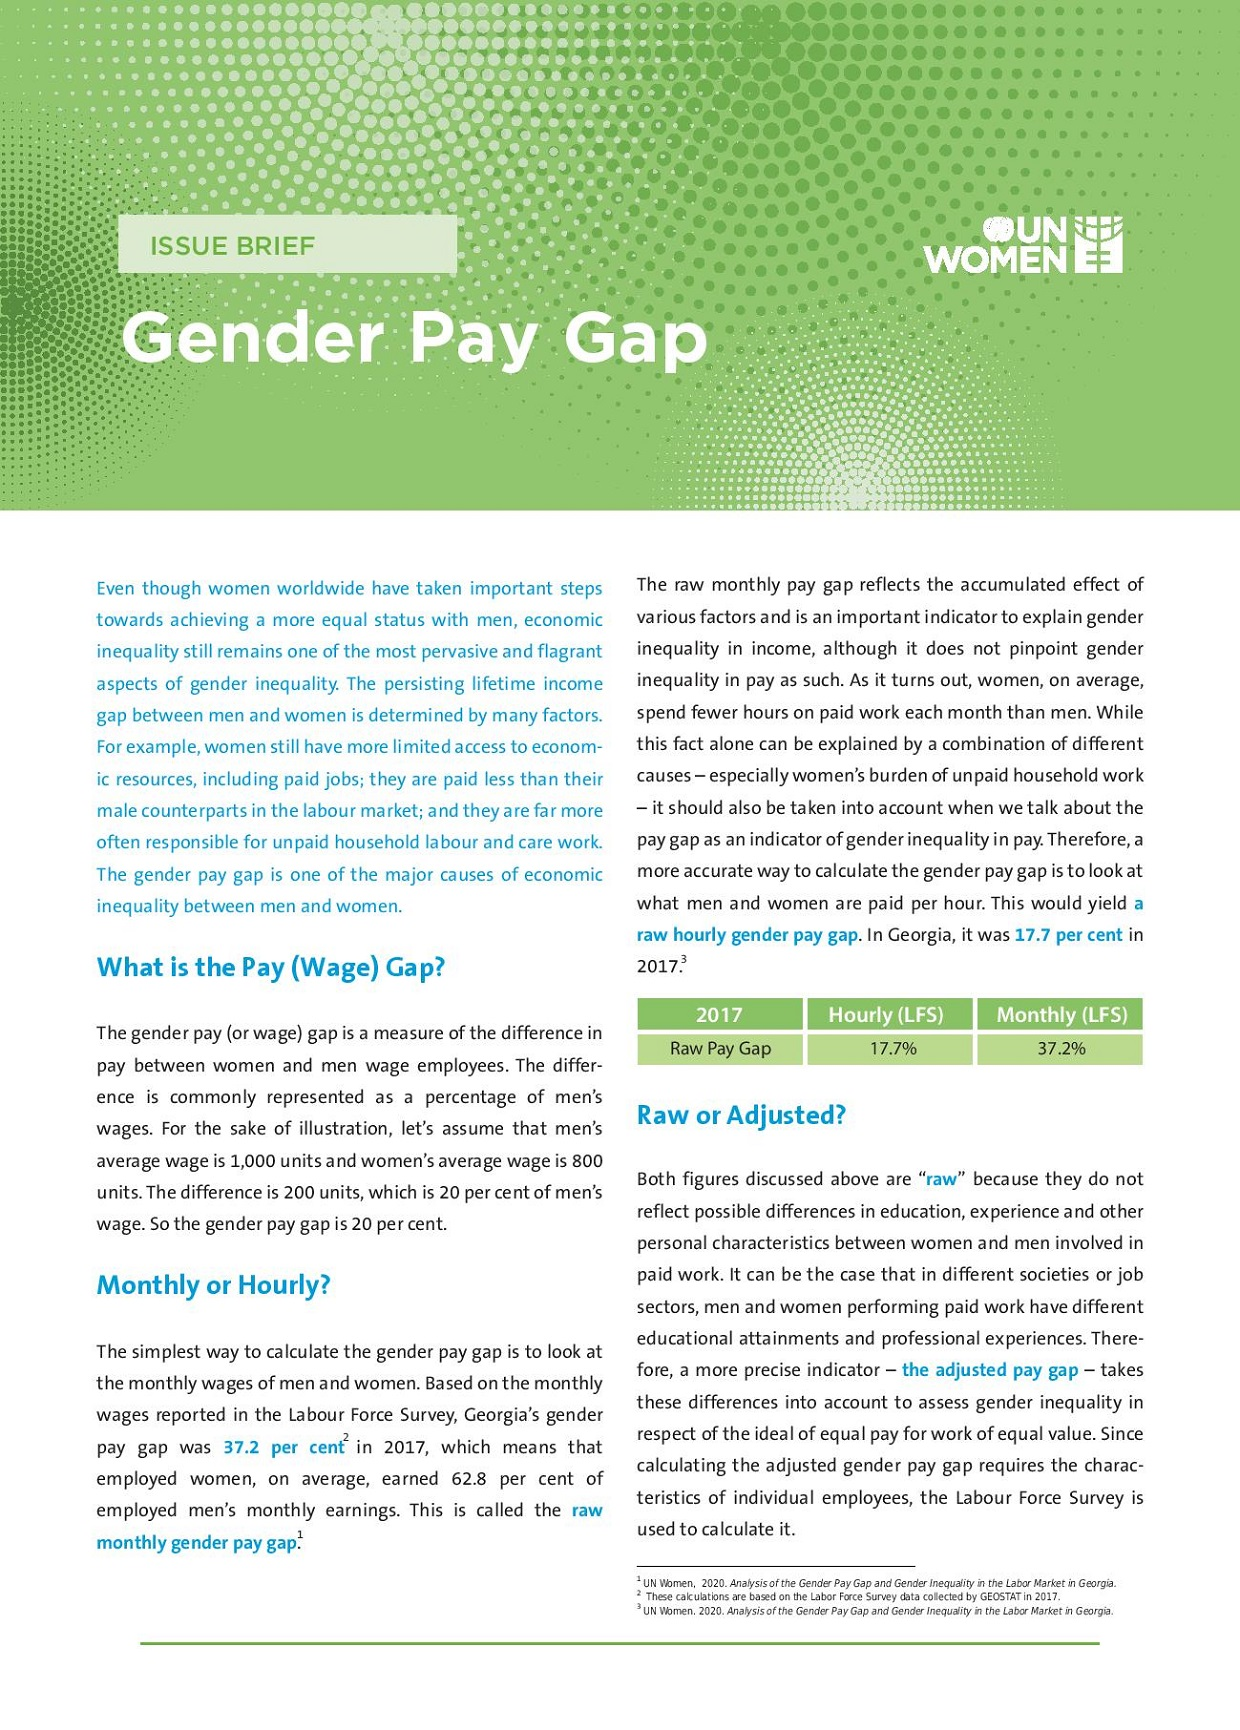 Gender Pay Gap Issue Brief